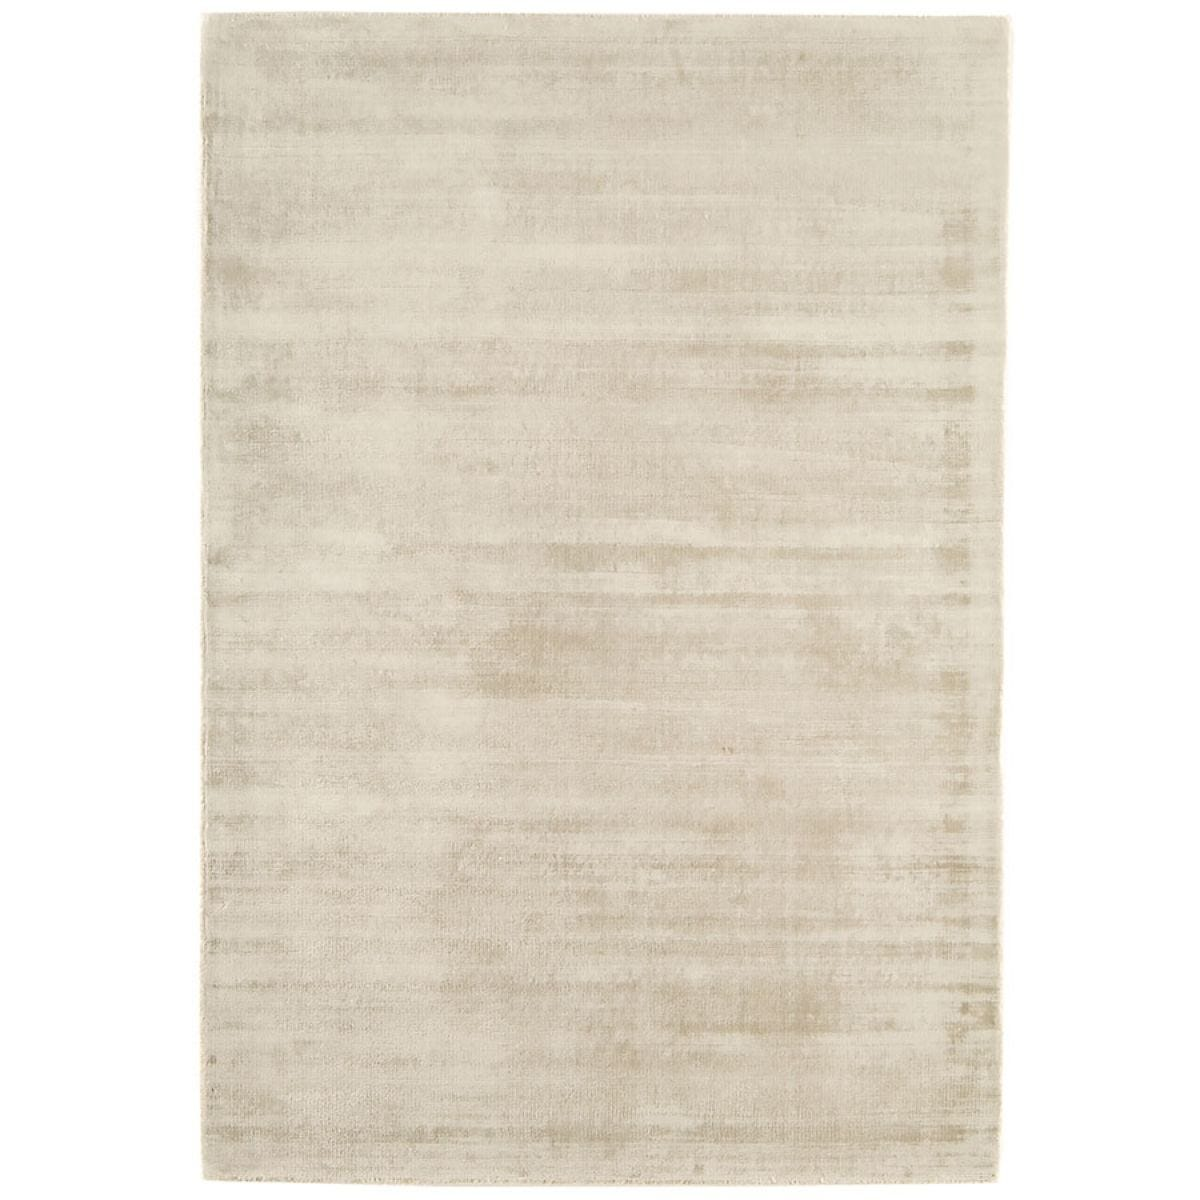 Asiatic Blade Rug , 240 x 340cm - Putty